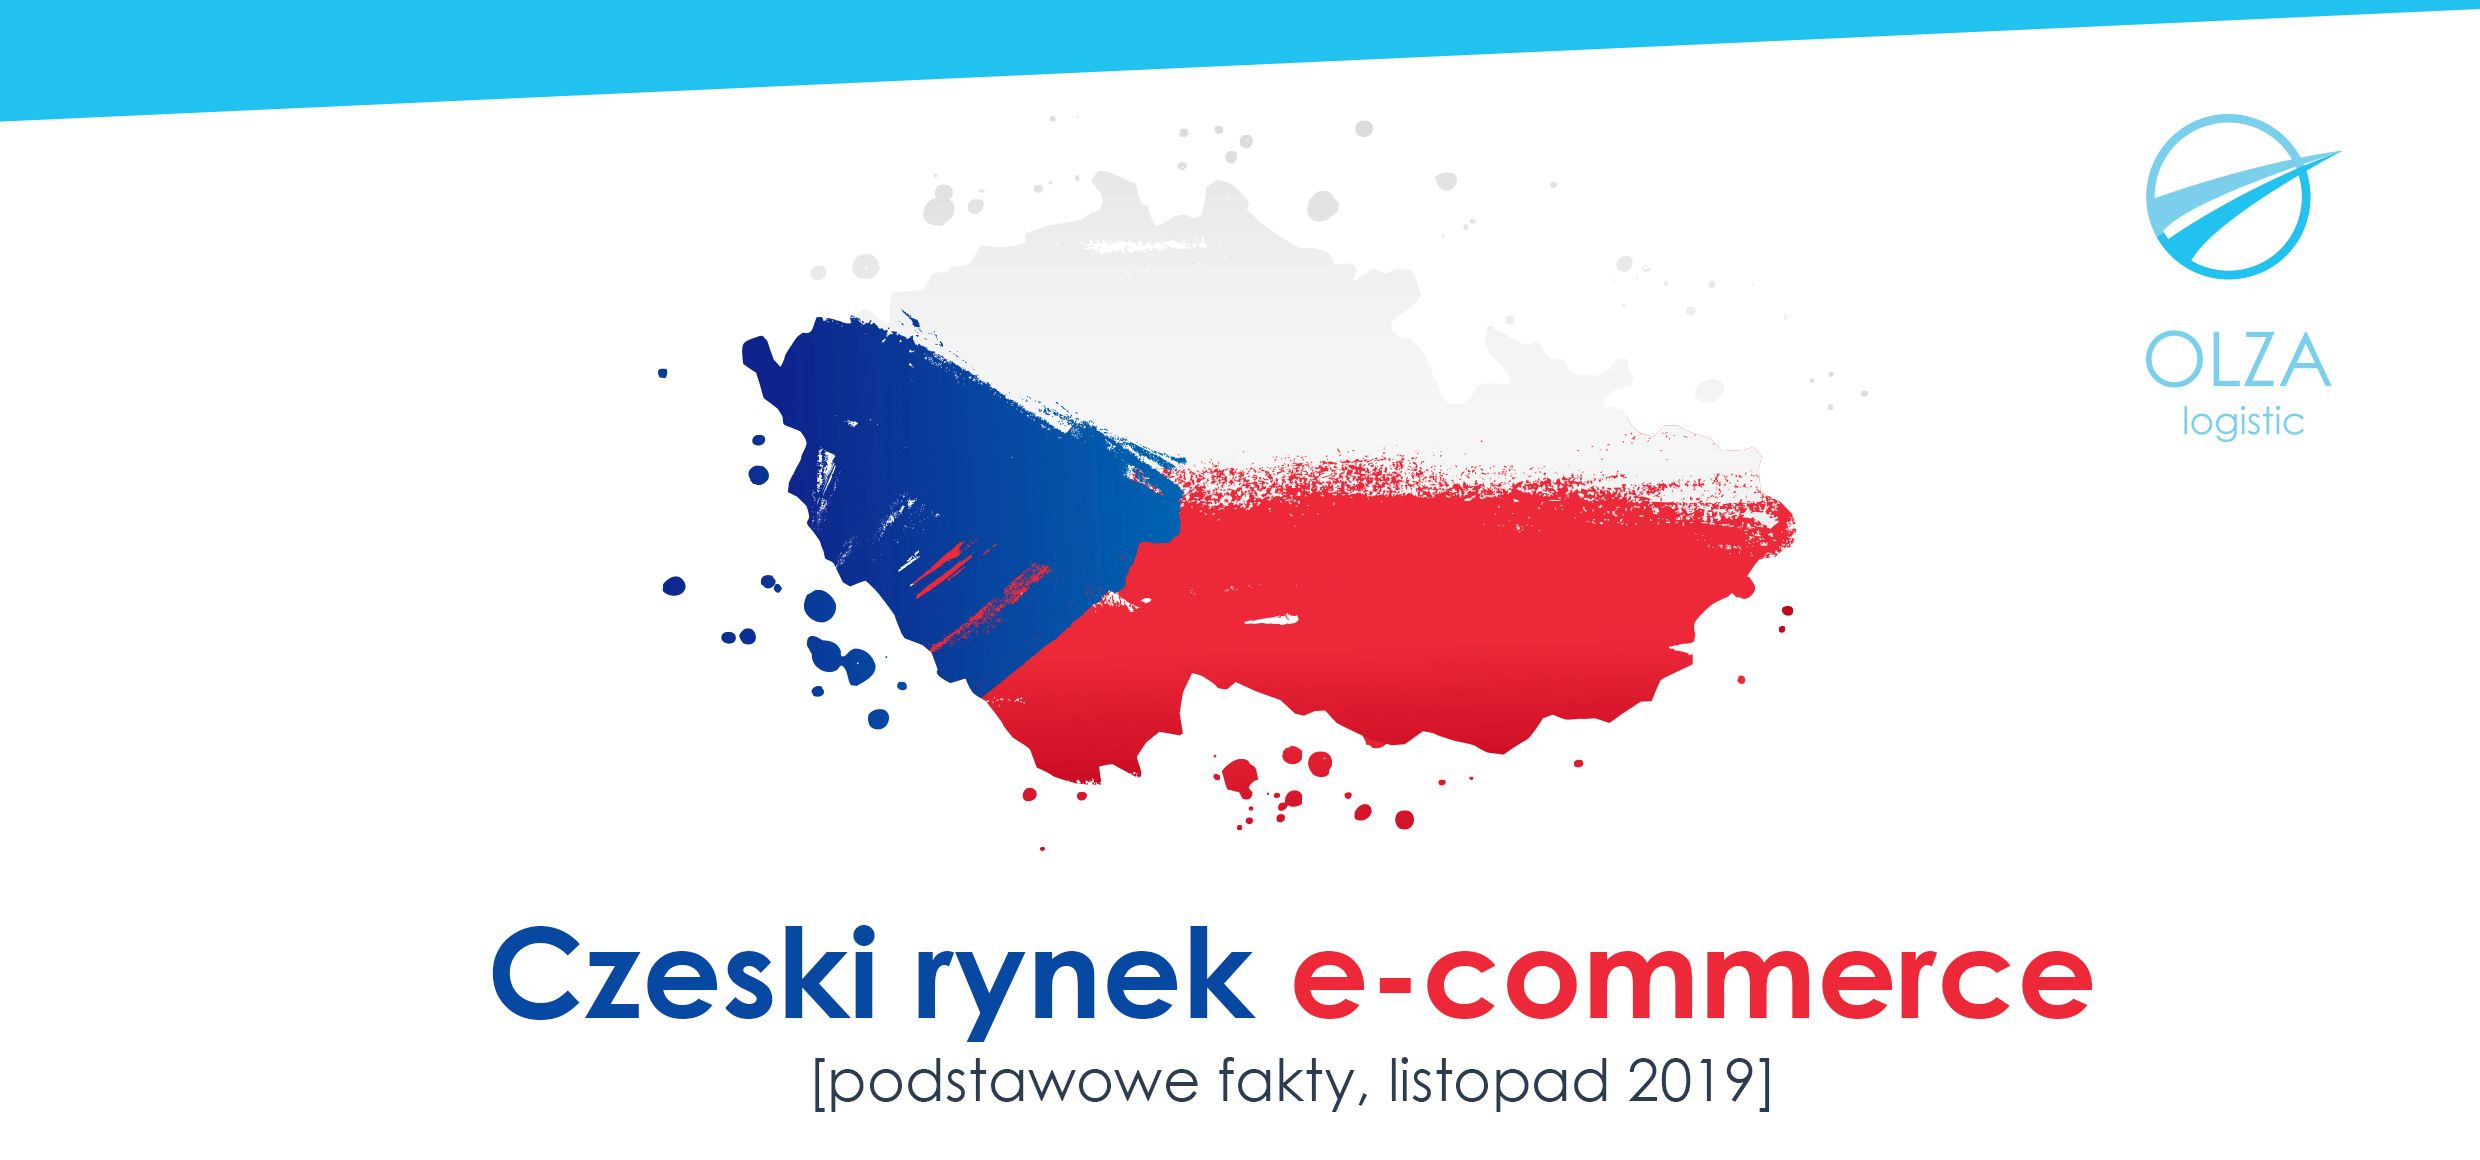 Czeski rynek e-commerce - fact sheet